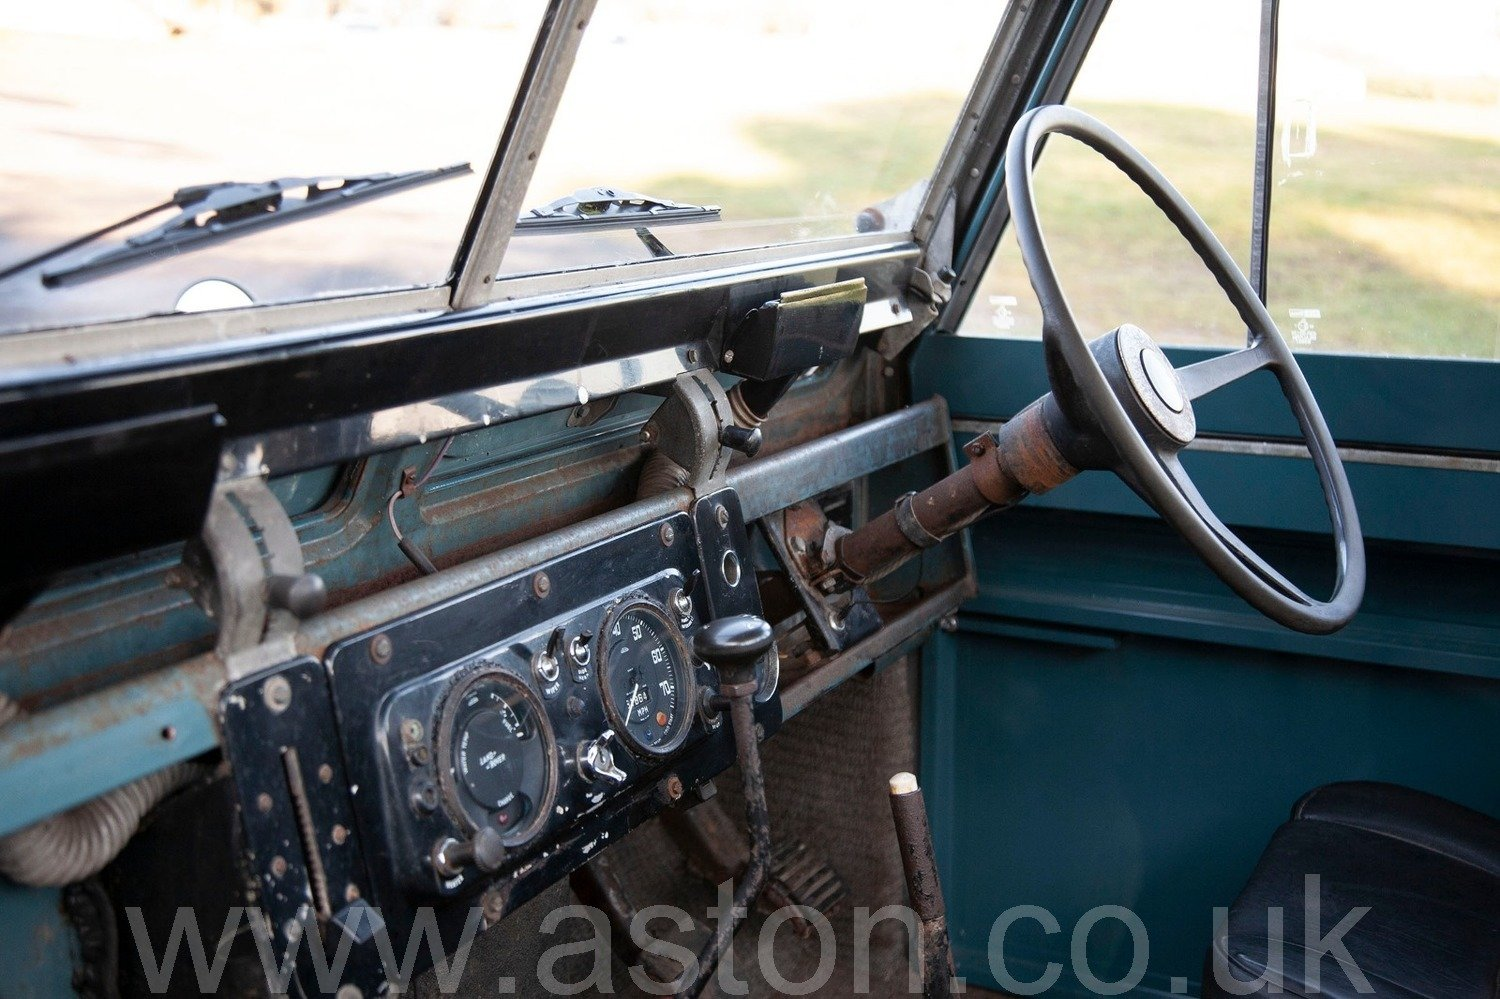 1969 Land Rover Series 2A - Ex Raf SOLD (picture 3 of 6)